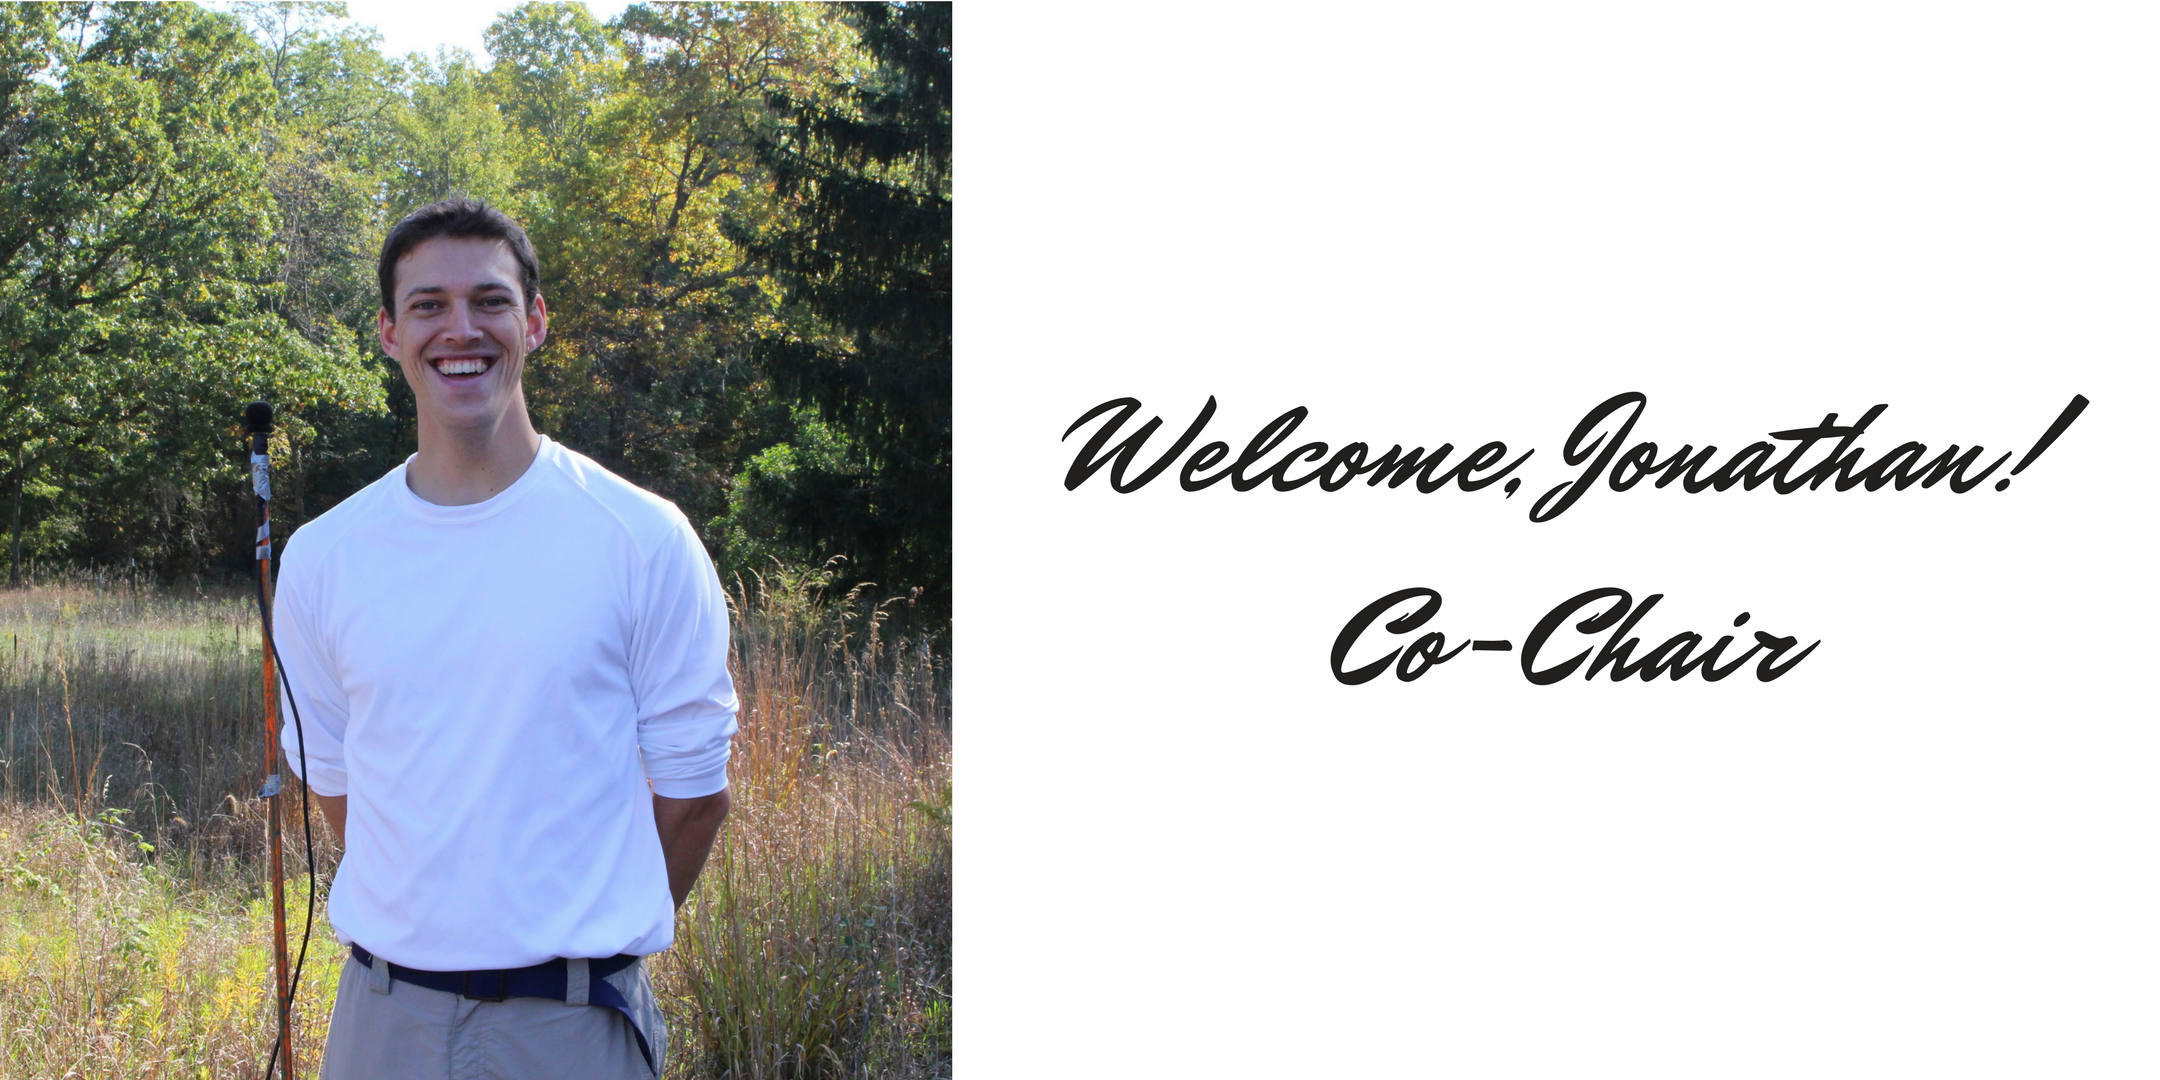 Welcome, Jonathan Eiseman as Co-Chair!